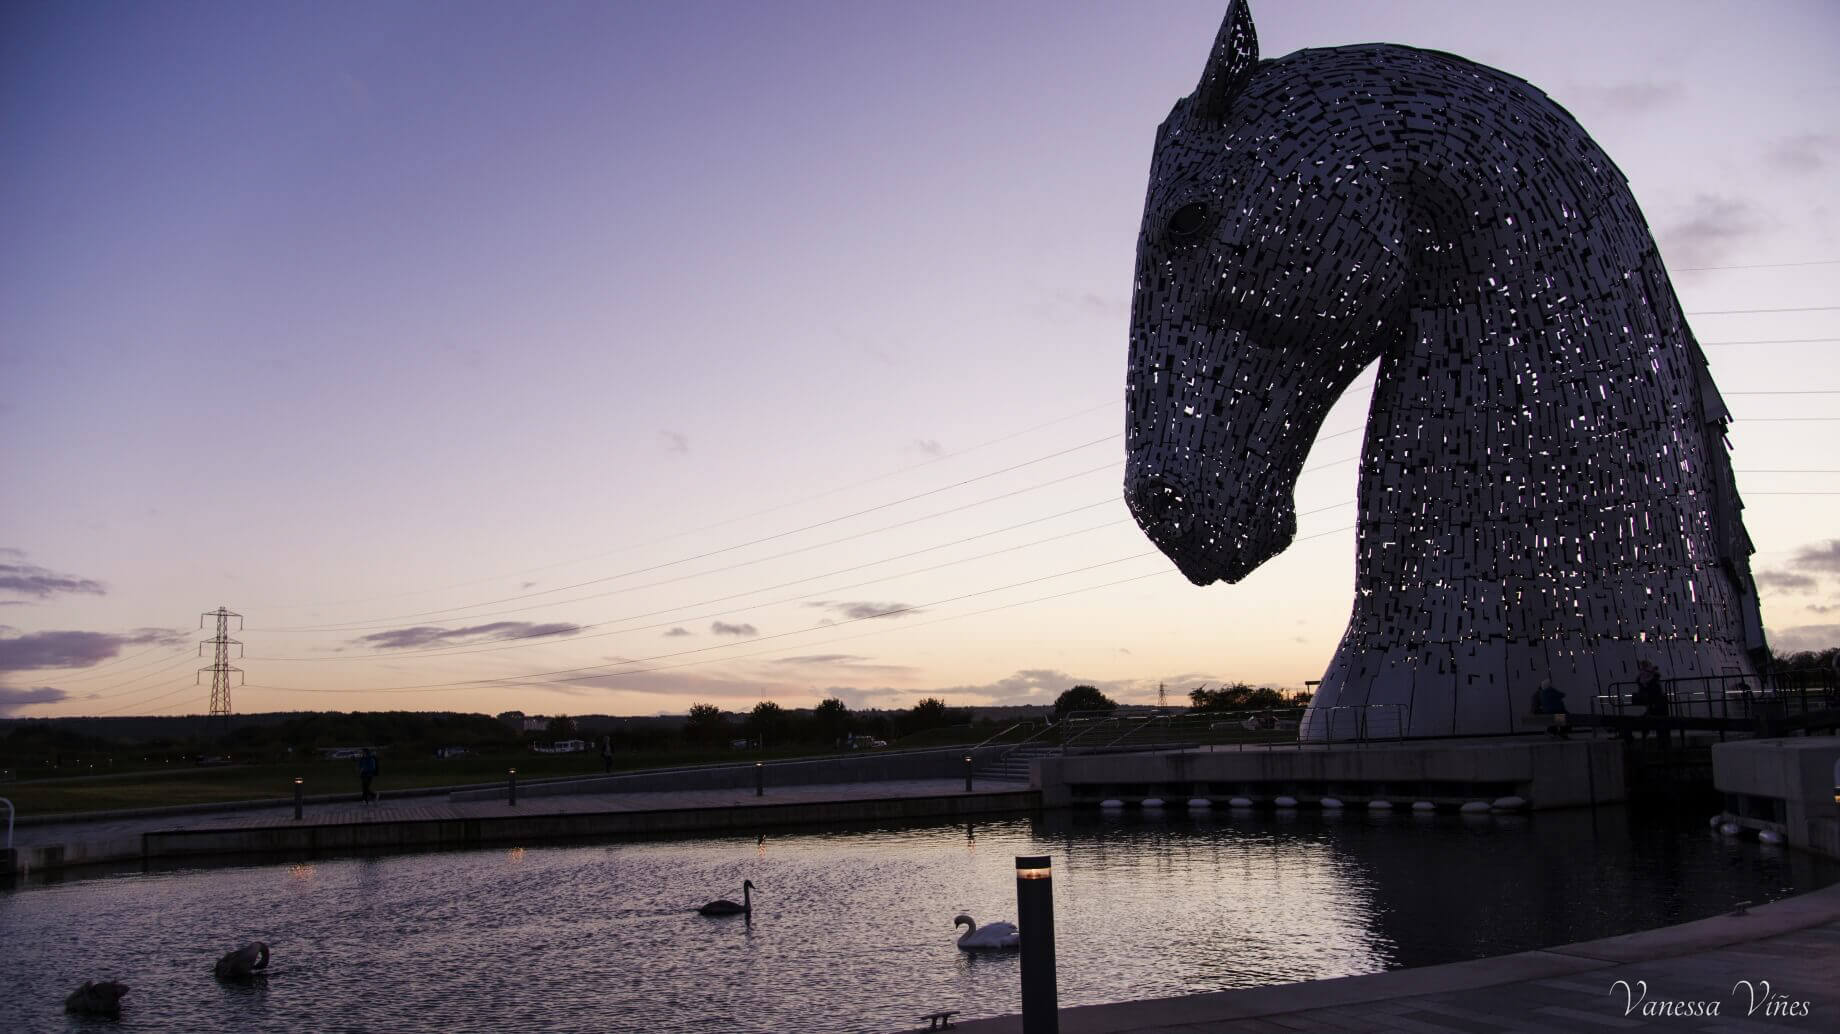 Sunset in the Kelpies